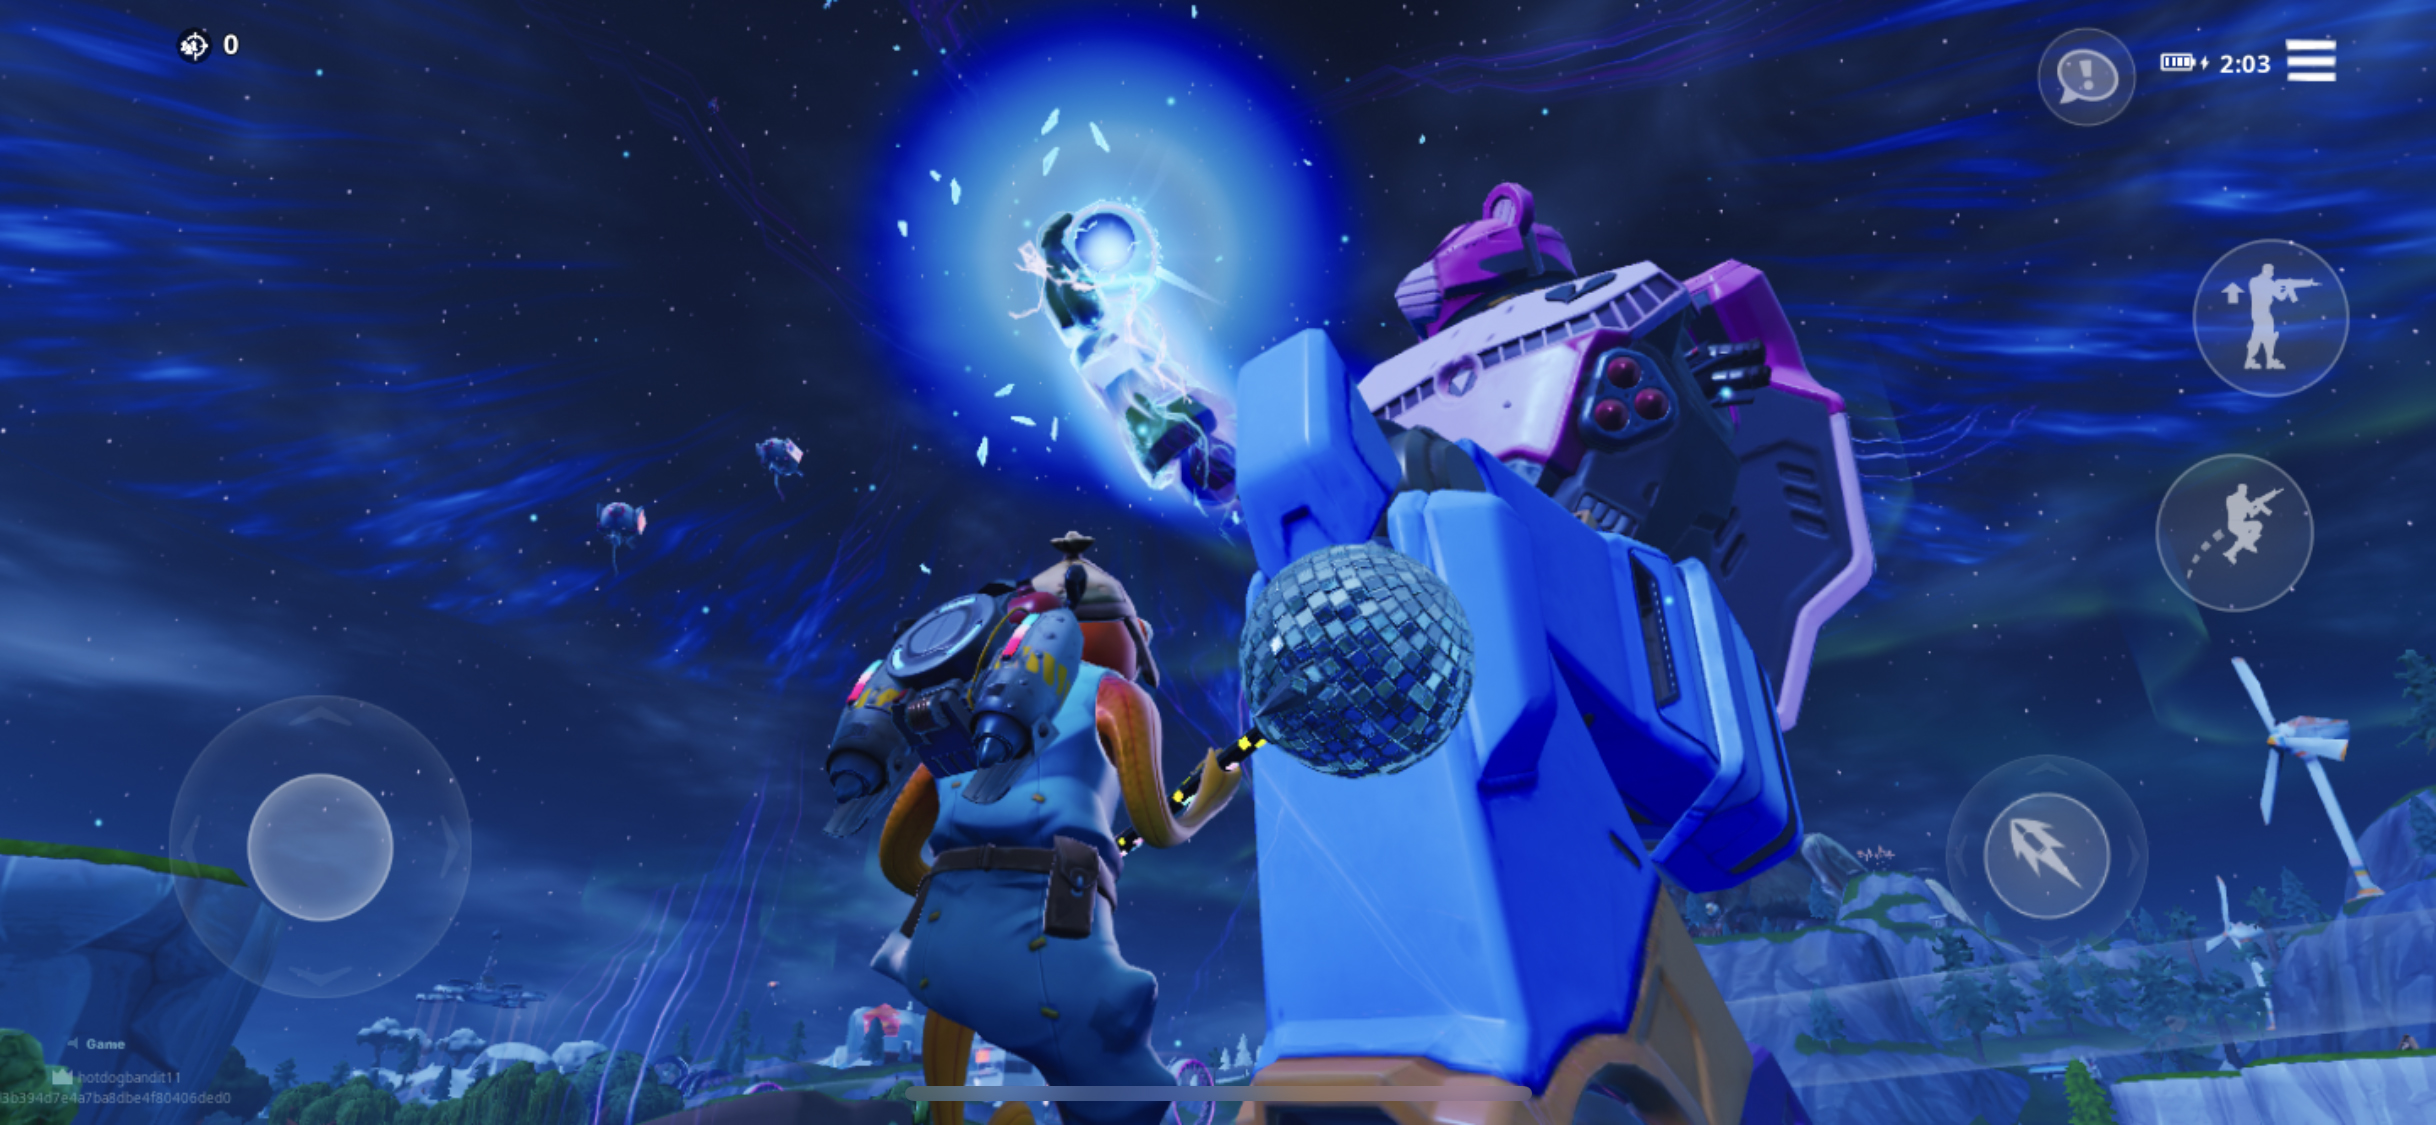 Fortnite's mecha-monster battle was its most impressive and